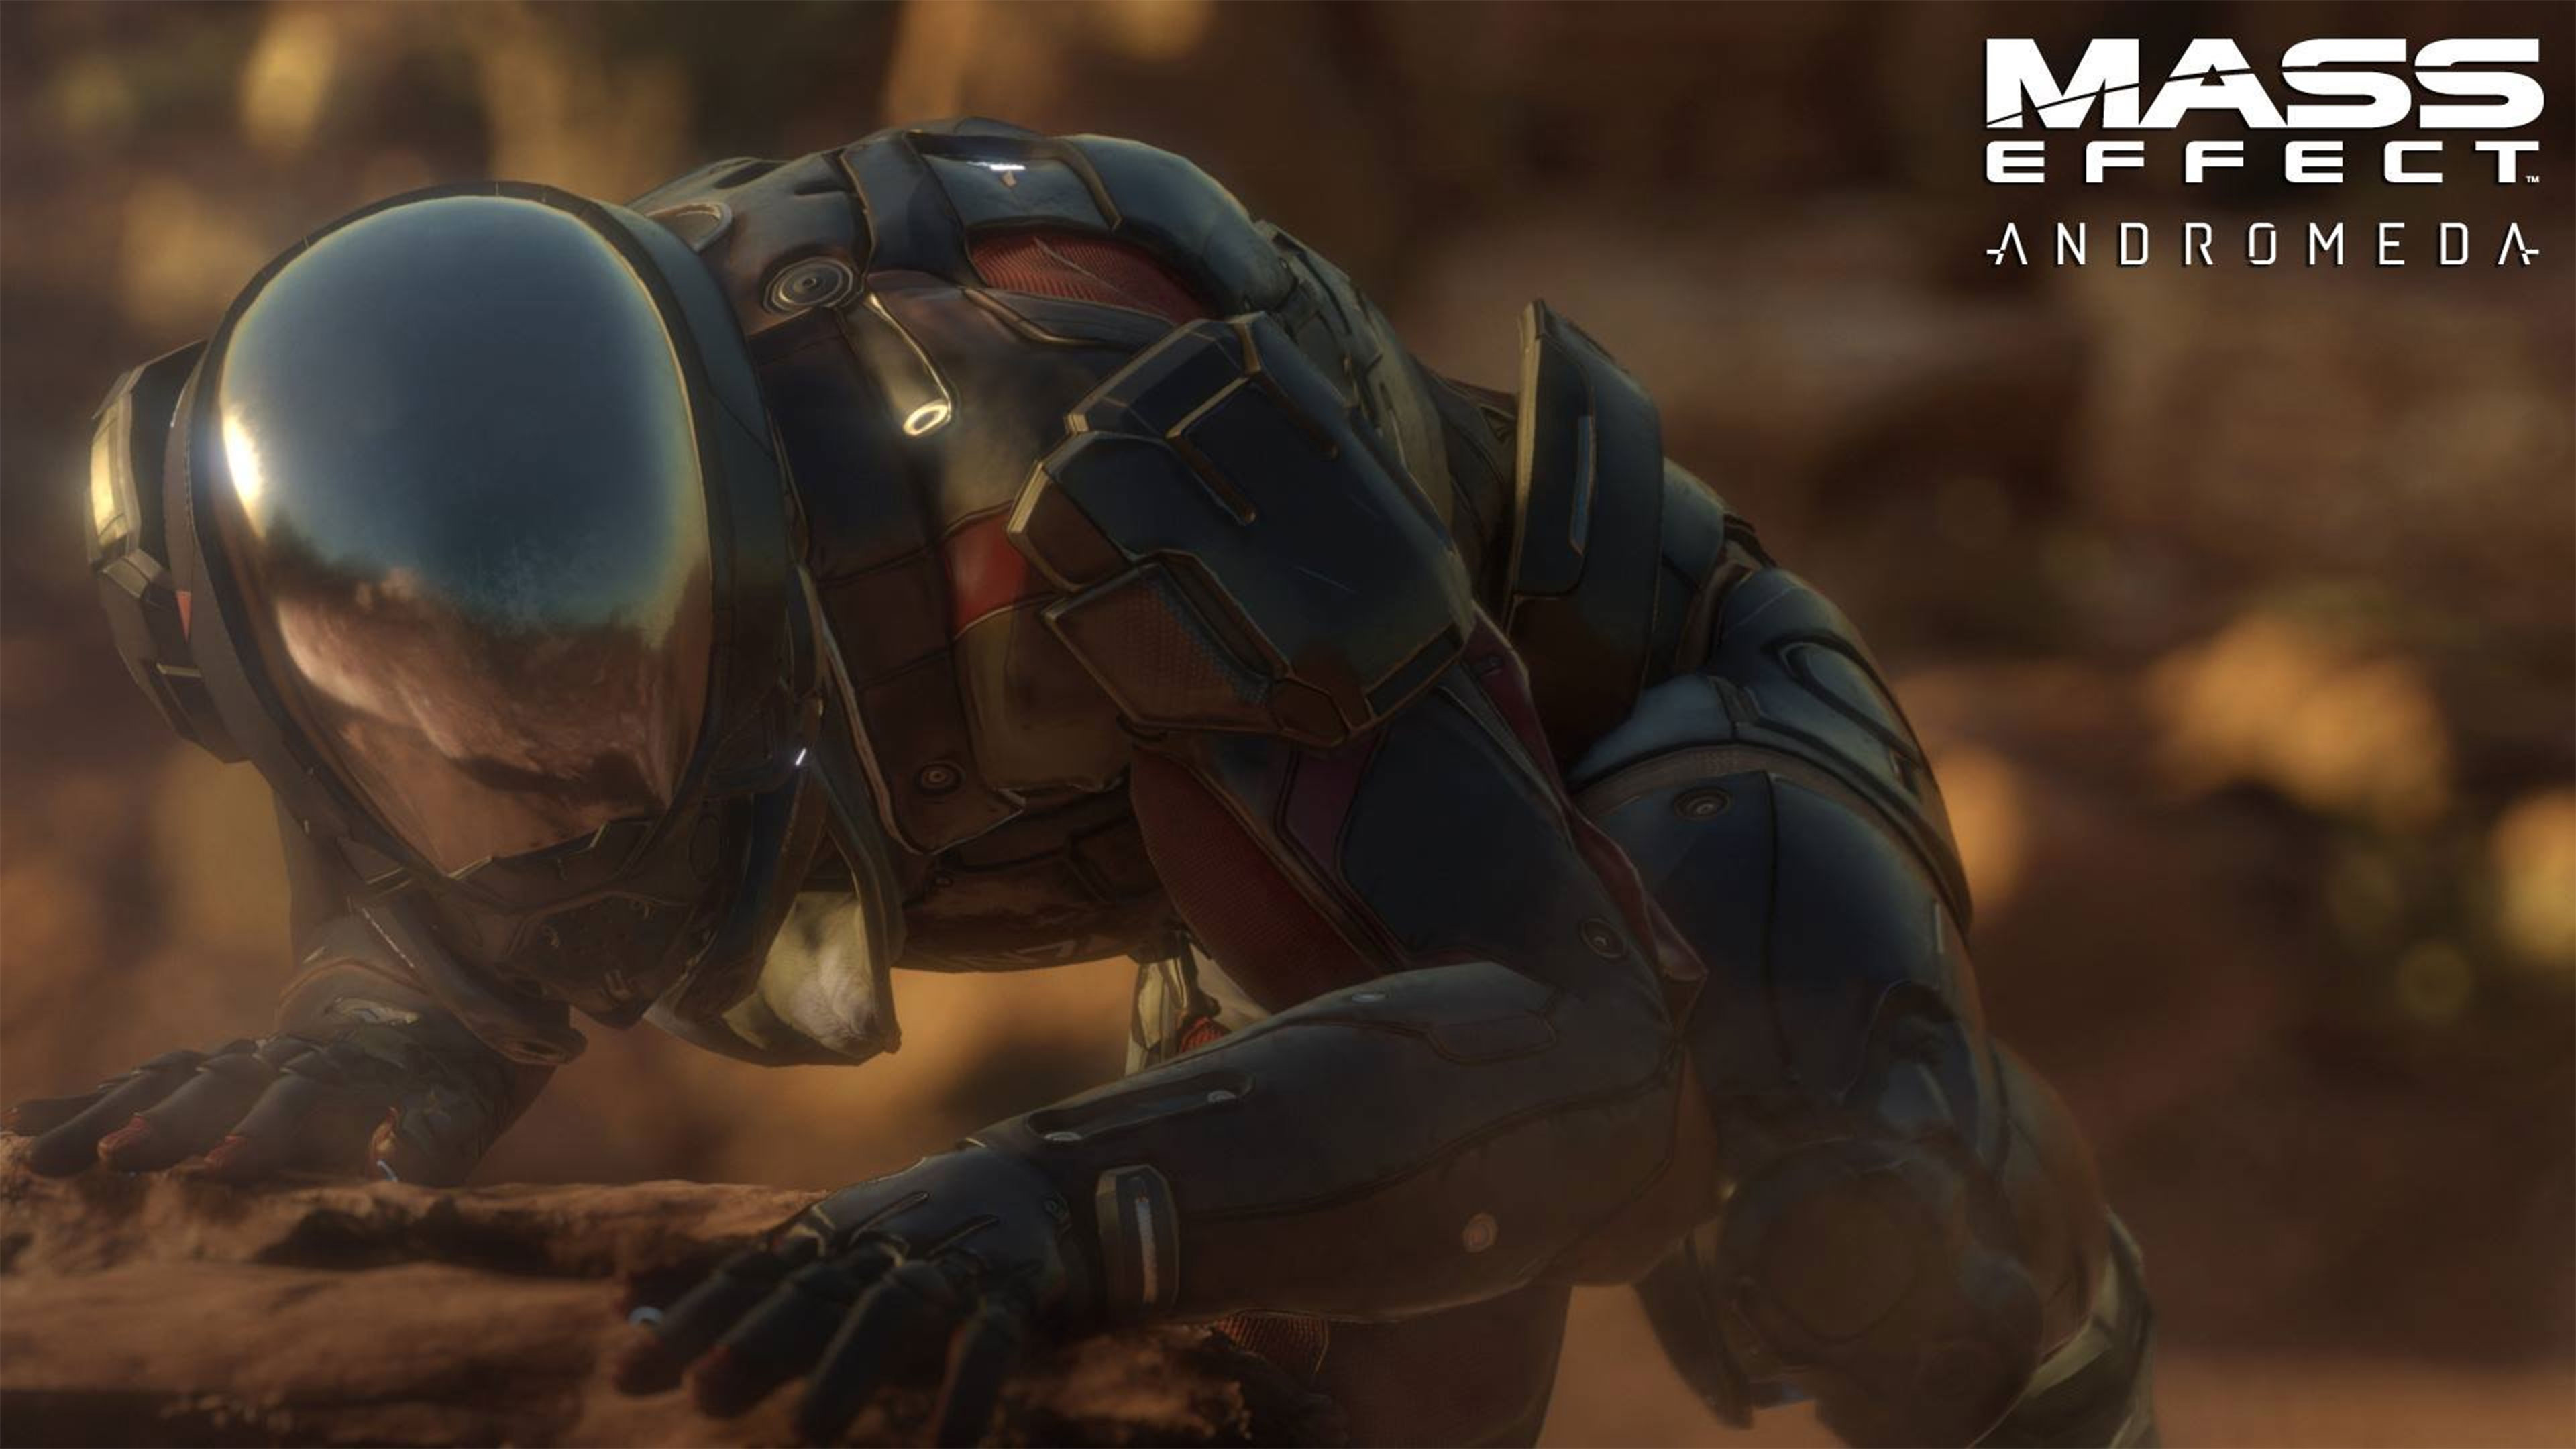 Mass-Effect-Andromeda-4K-Wallpaper.jpg